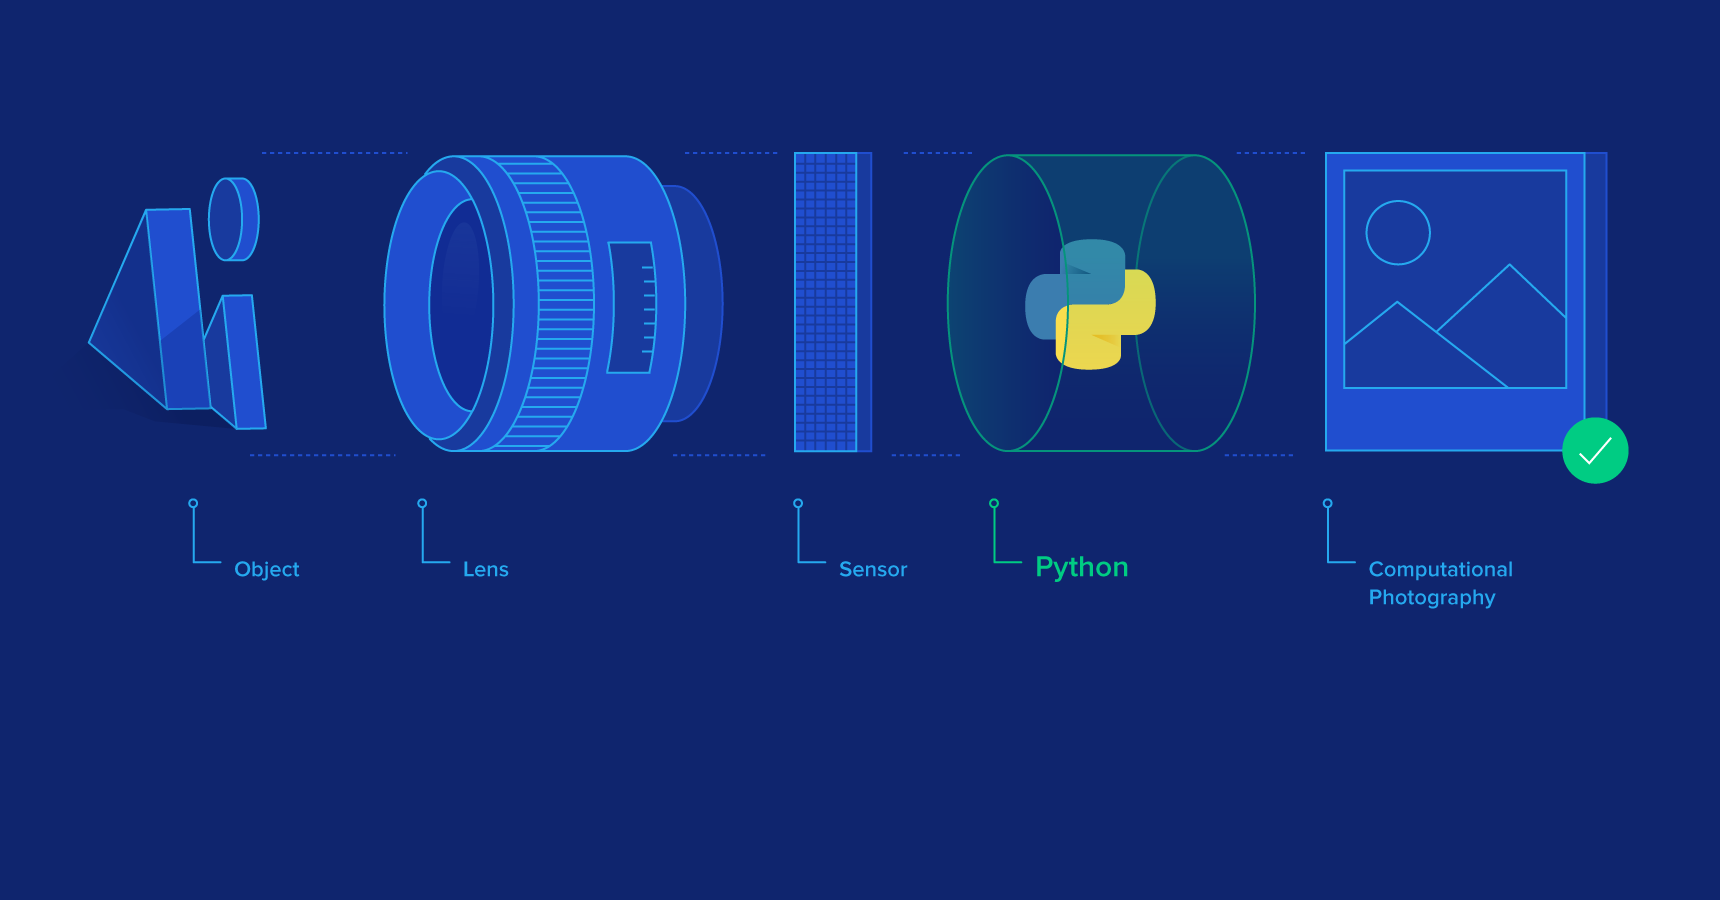 Python Image Processing in Computational Photography | Toptal